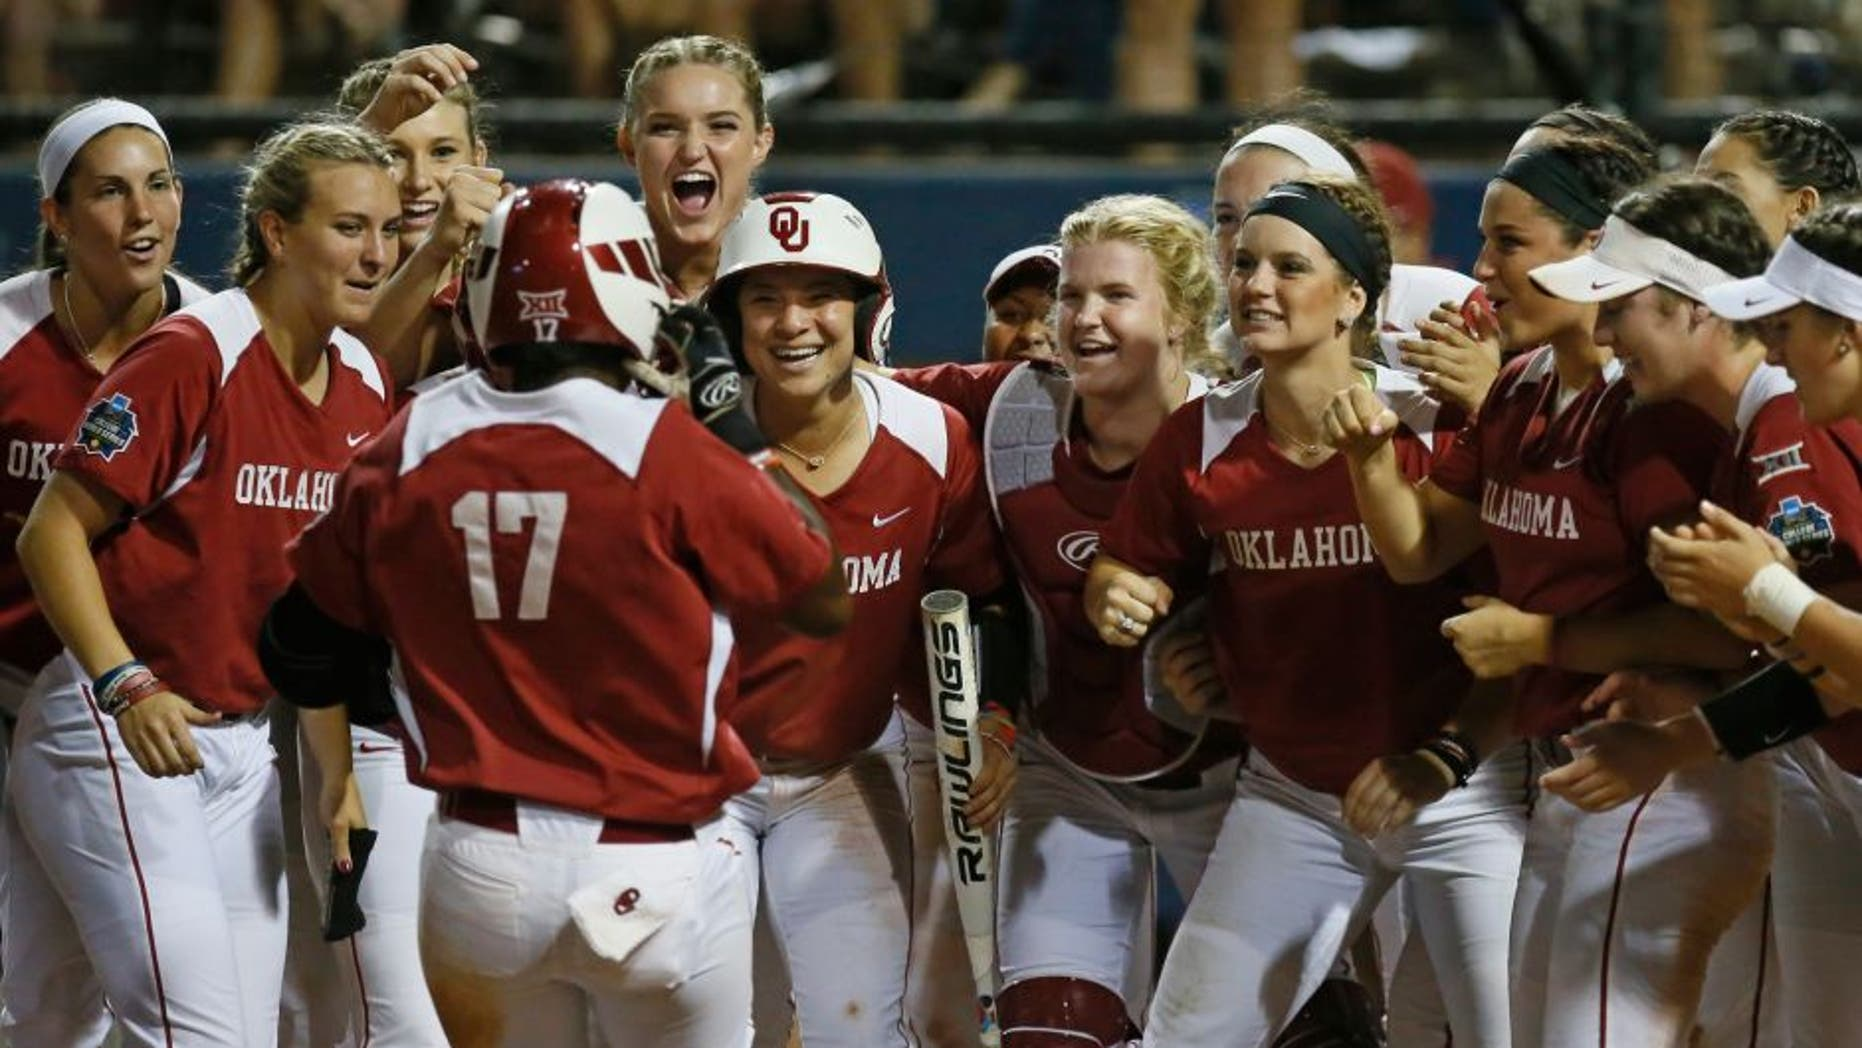 Oklahoma infielder Shay Knighten (17) is greeted at the plate by her teammates after hitting a home run in the seventh inning of an NCAA Women's College World Series softball game against LSU in Oklahoma City, Sunday, June 5, 2016. Oklahoma won 7-3. (AP Photo/Sue Ogrocki)